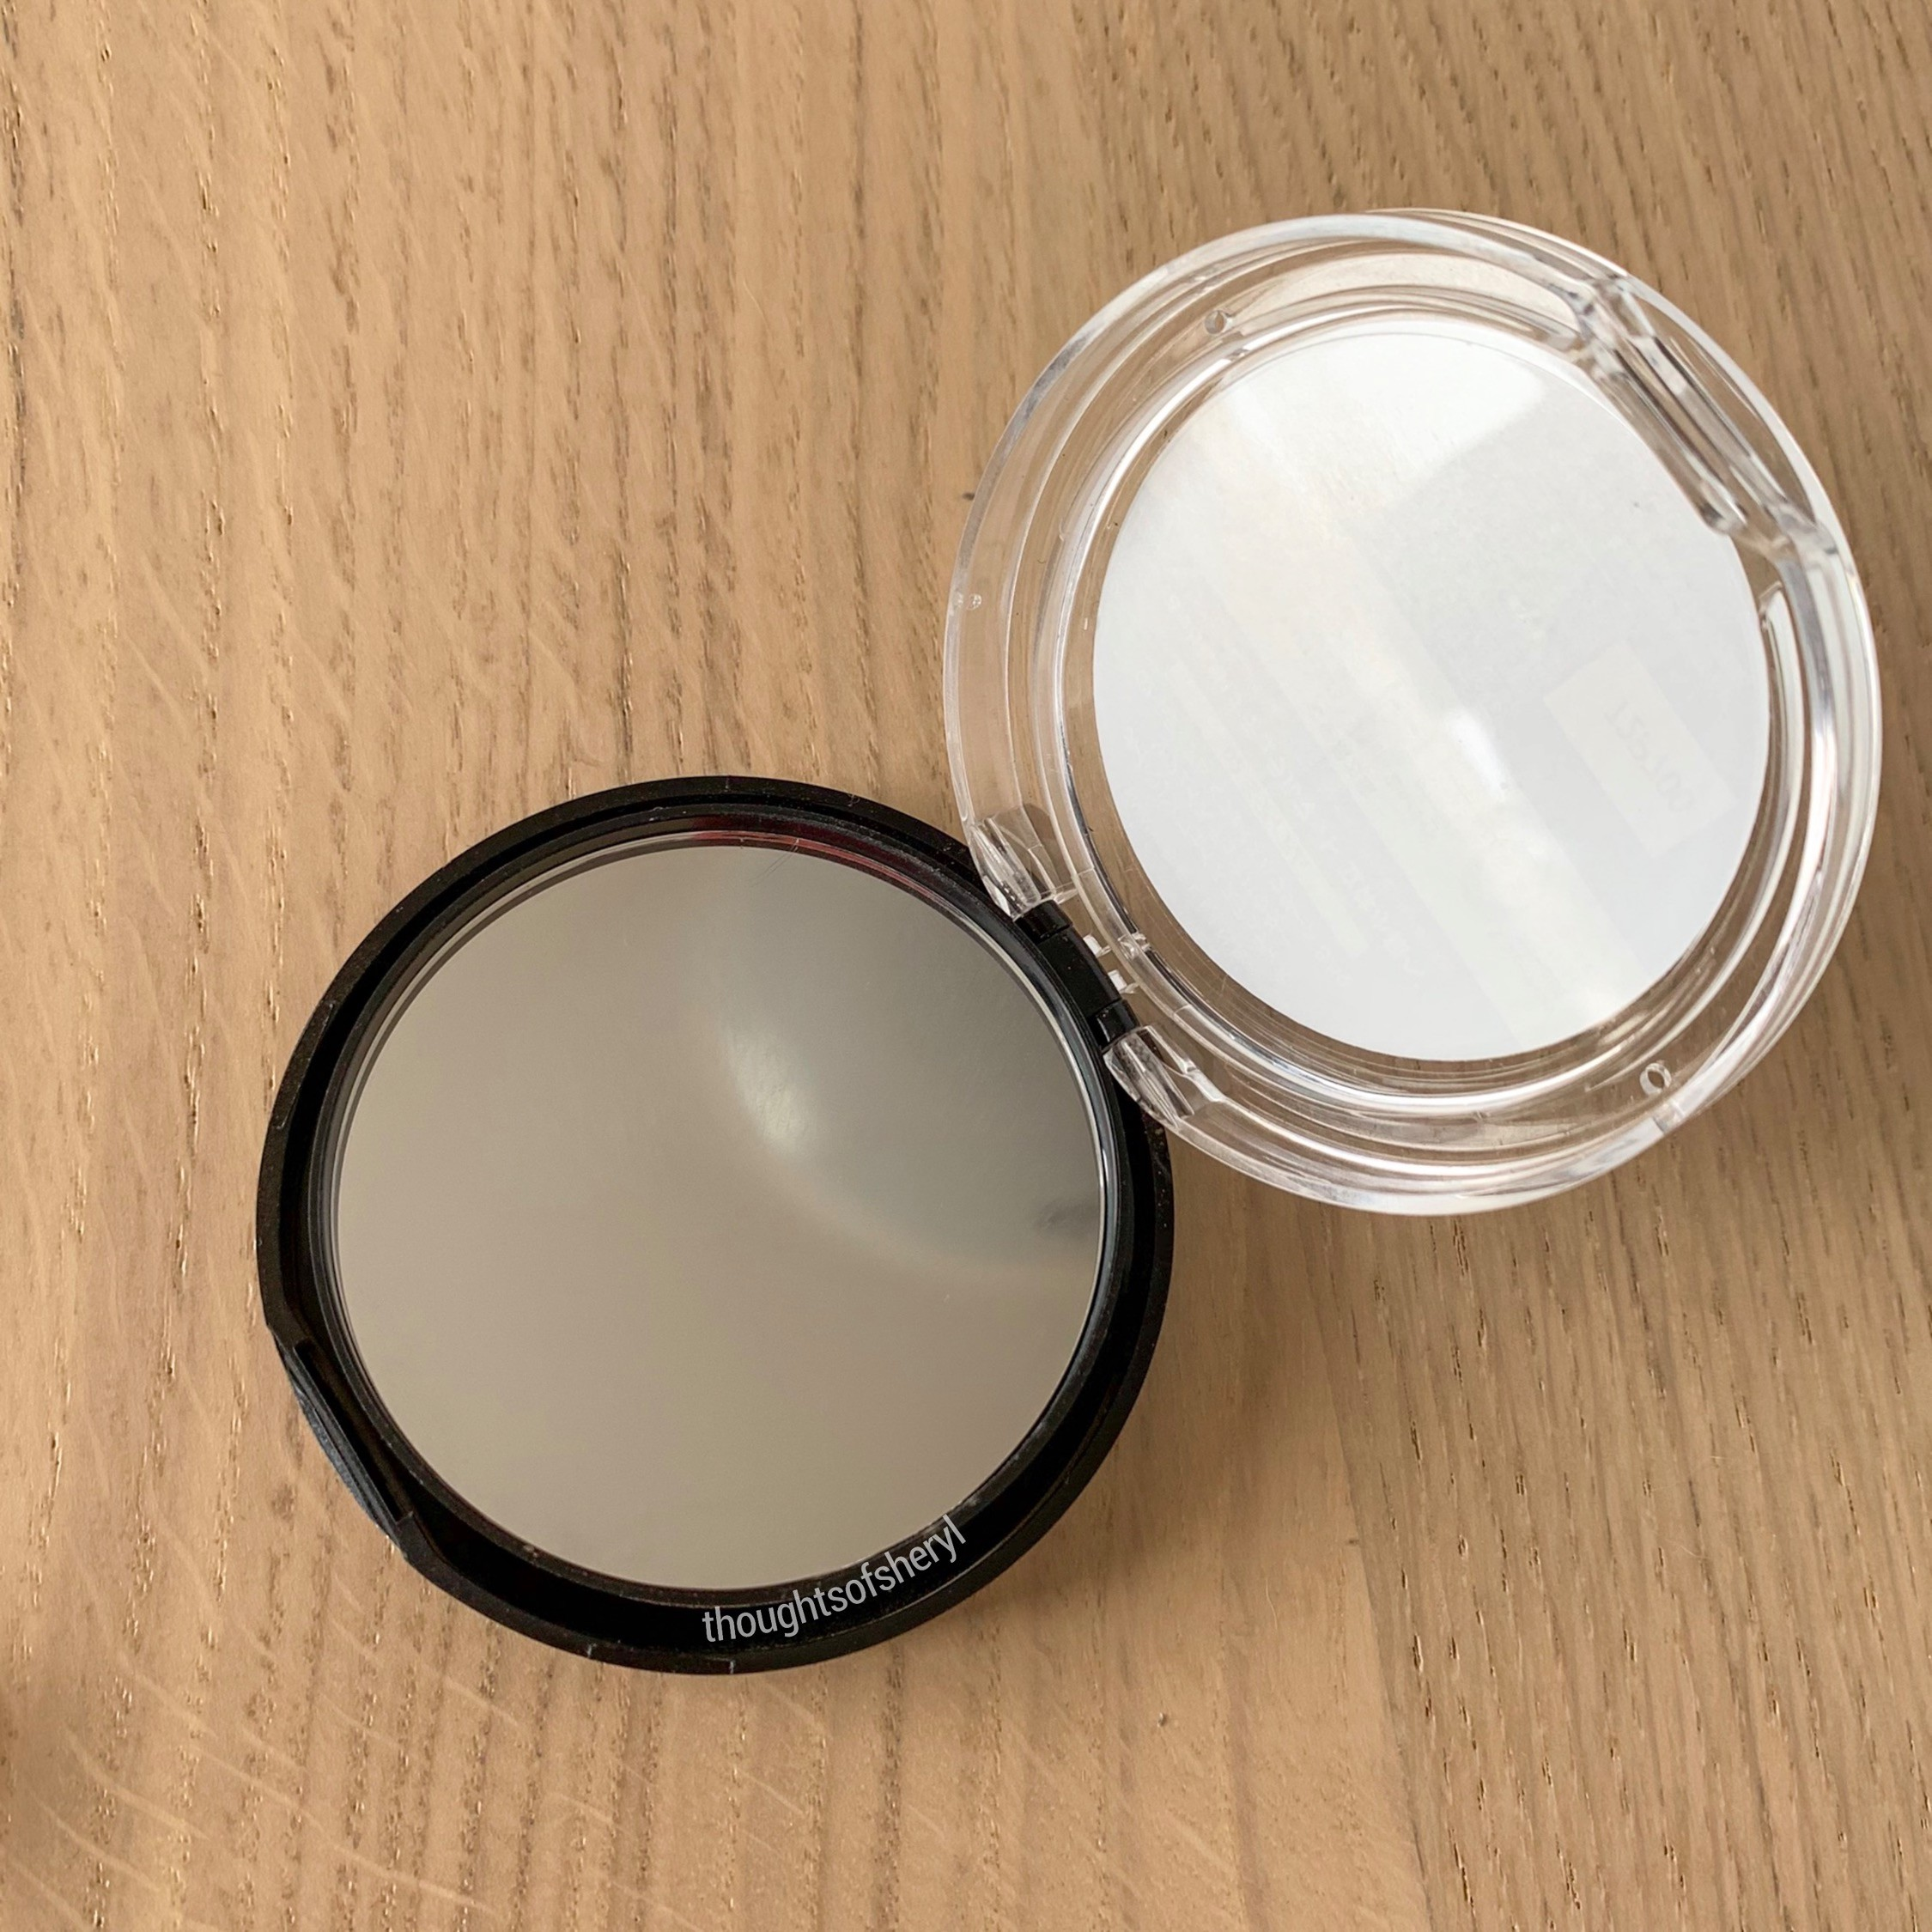 maybelline v-face duo powder review